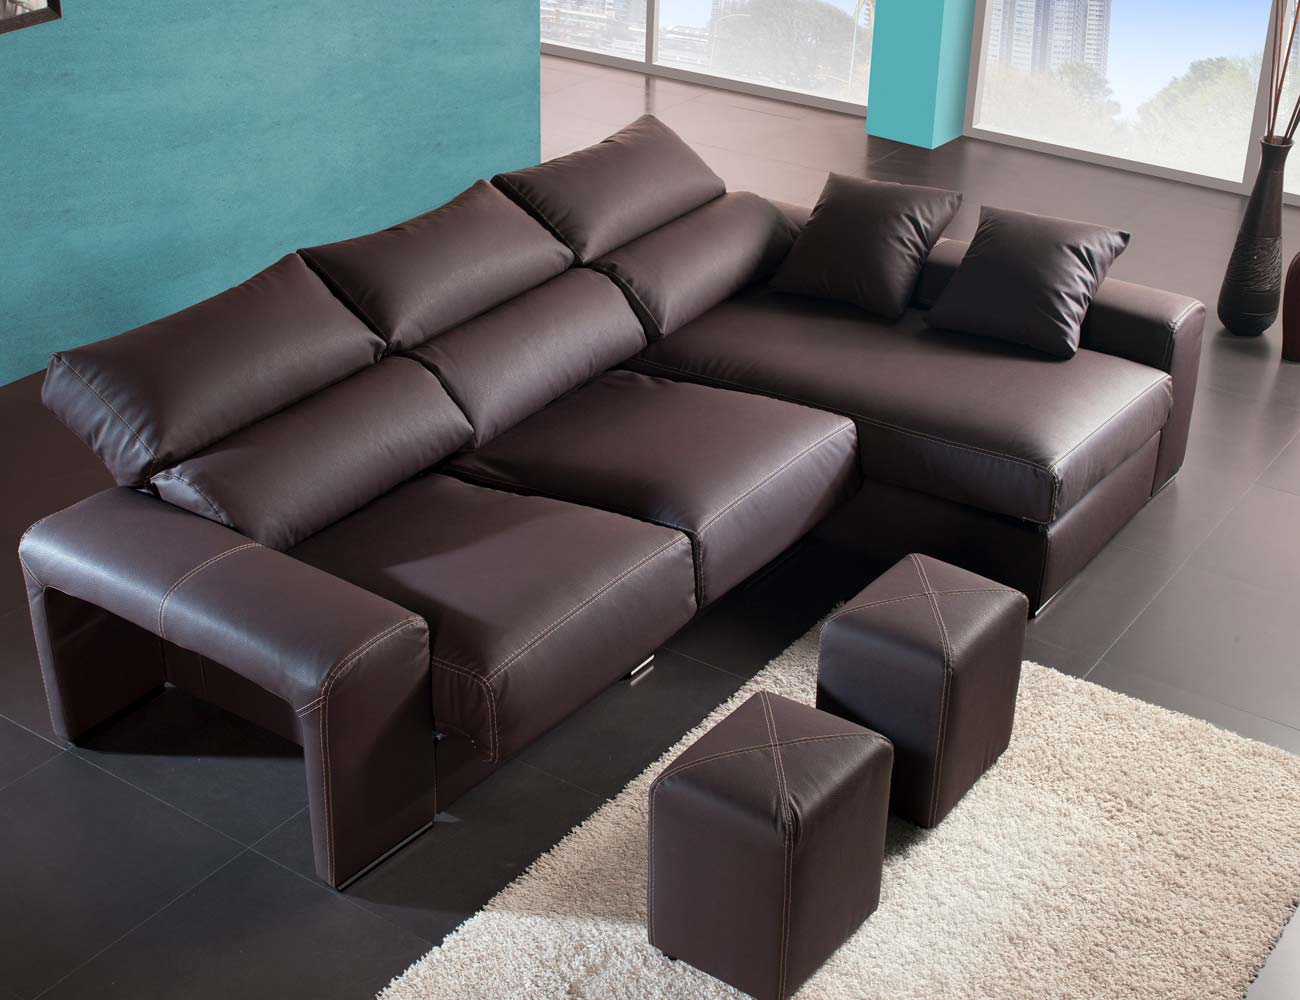 Sofa chaiselongue moderno polipiel chocolate poufs taburetes62